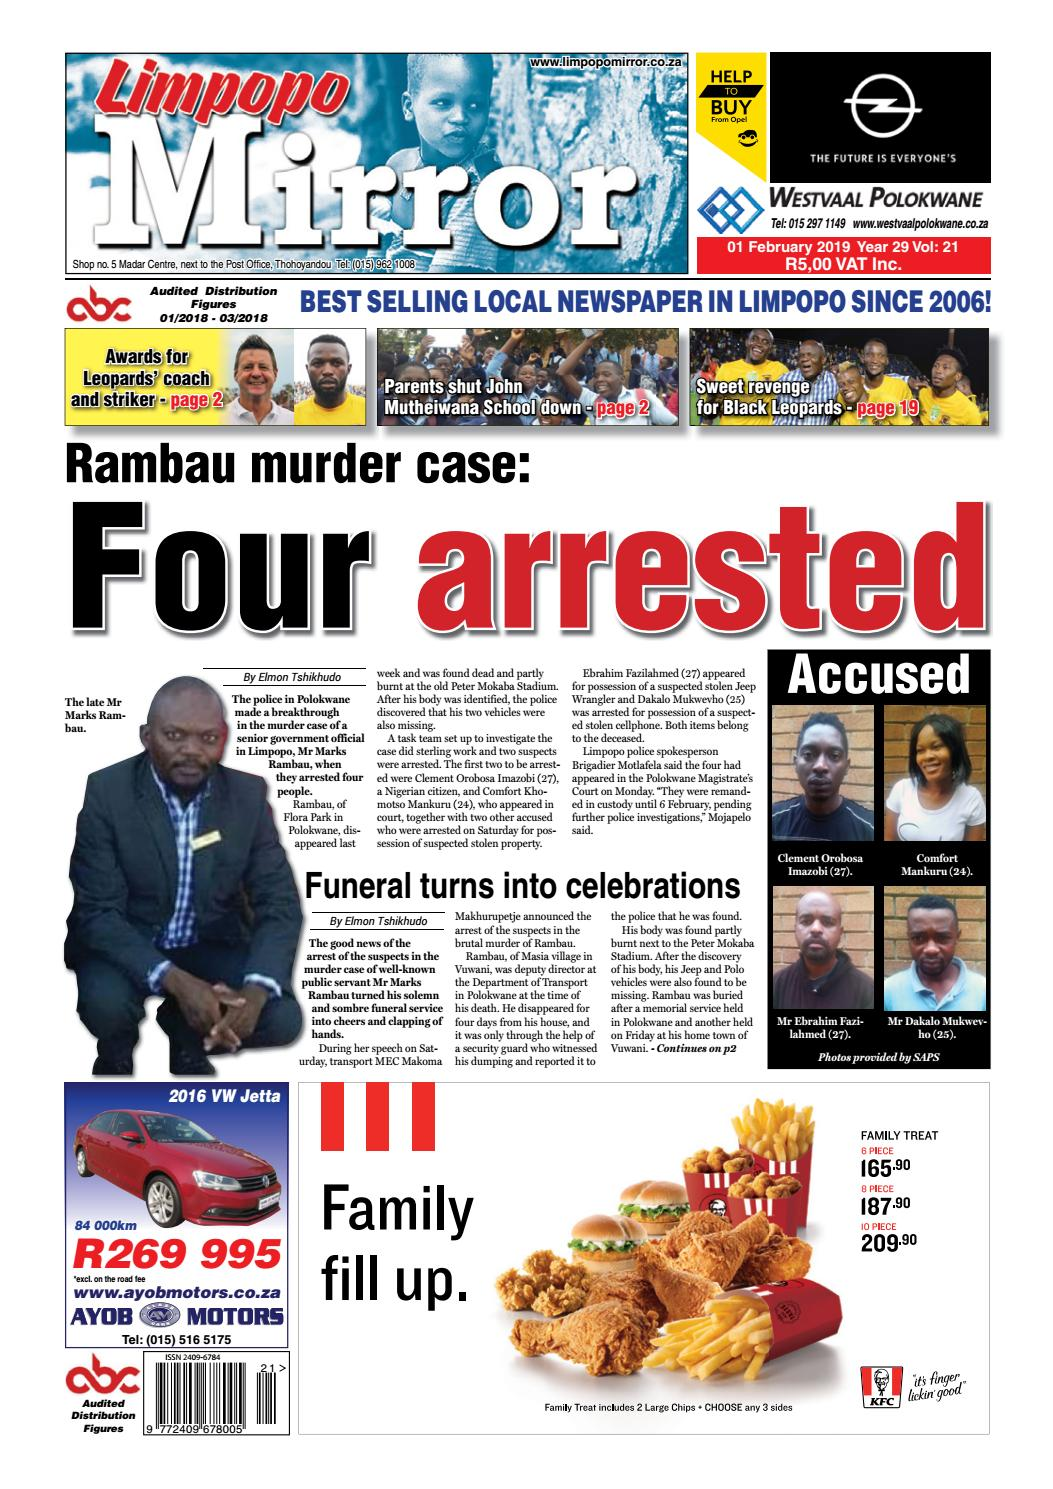 Limpopo Mirror 1 February 2019 by Zoutnet - issuu